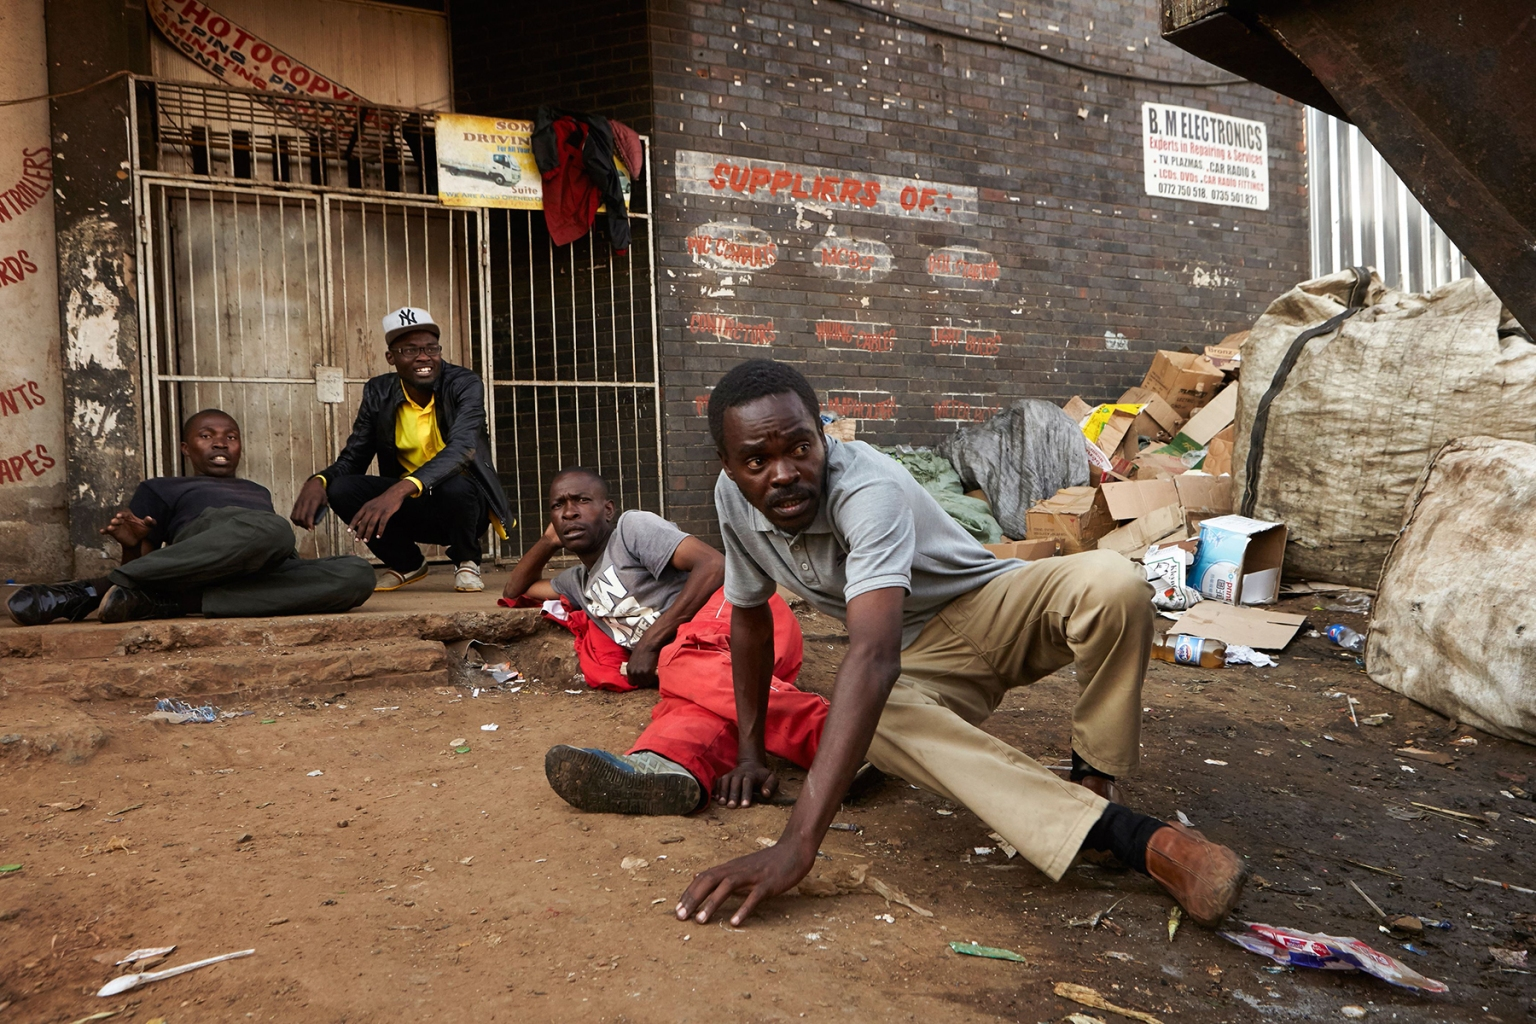 Citizens hide from Zimbabwean soldiers in the streets of Harare on Aug. 1, after protests erupted over alleged fraud in the country's election. ALEX MCBRIDE /AFP/GETTY IMAGES